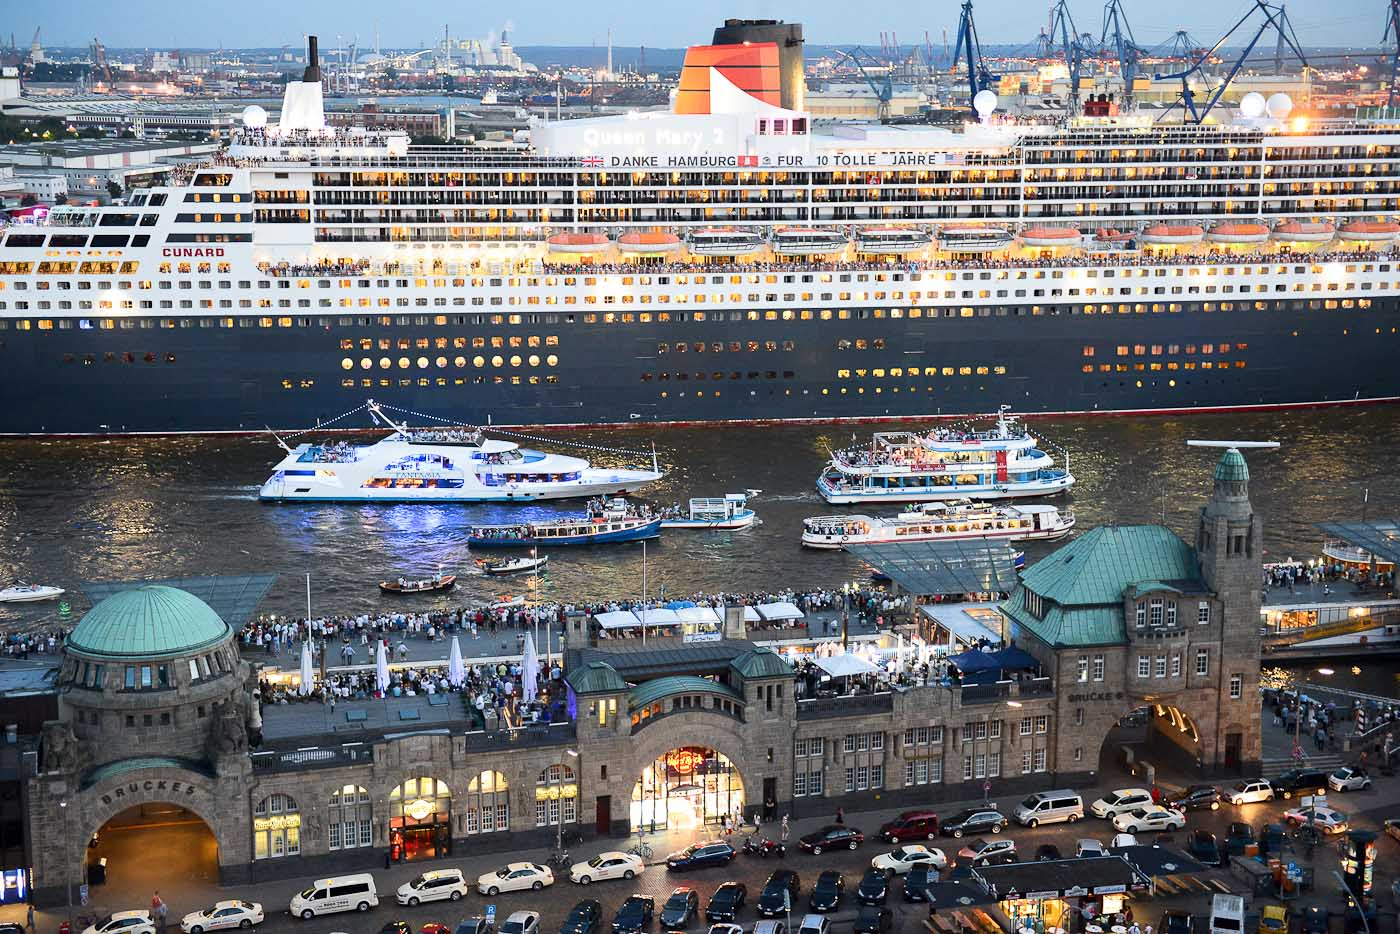 Foto ID 15082403 Queen Mary 2 Hamburg